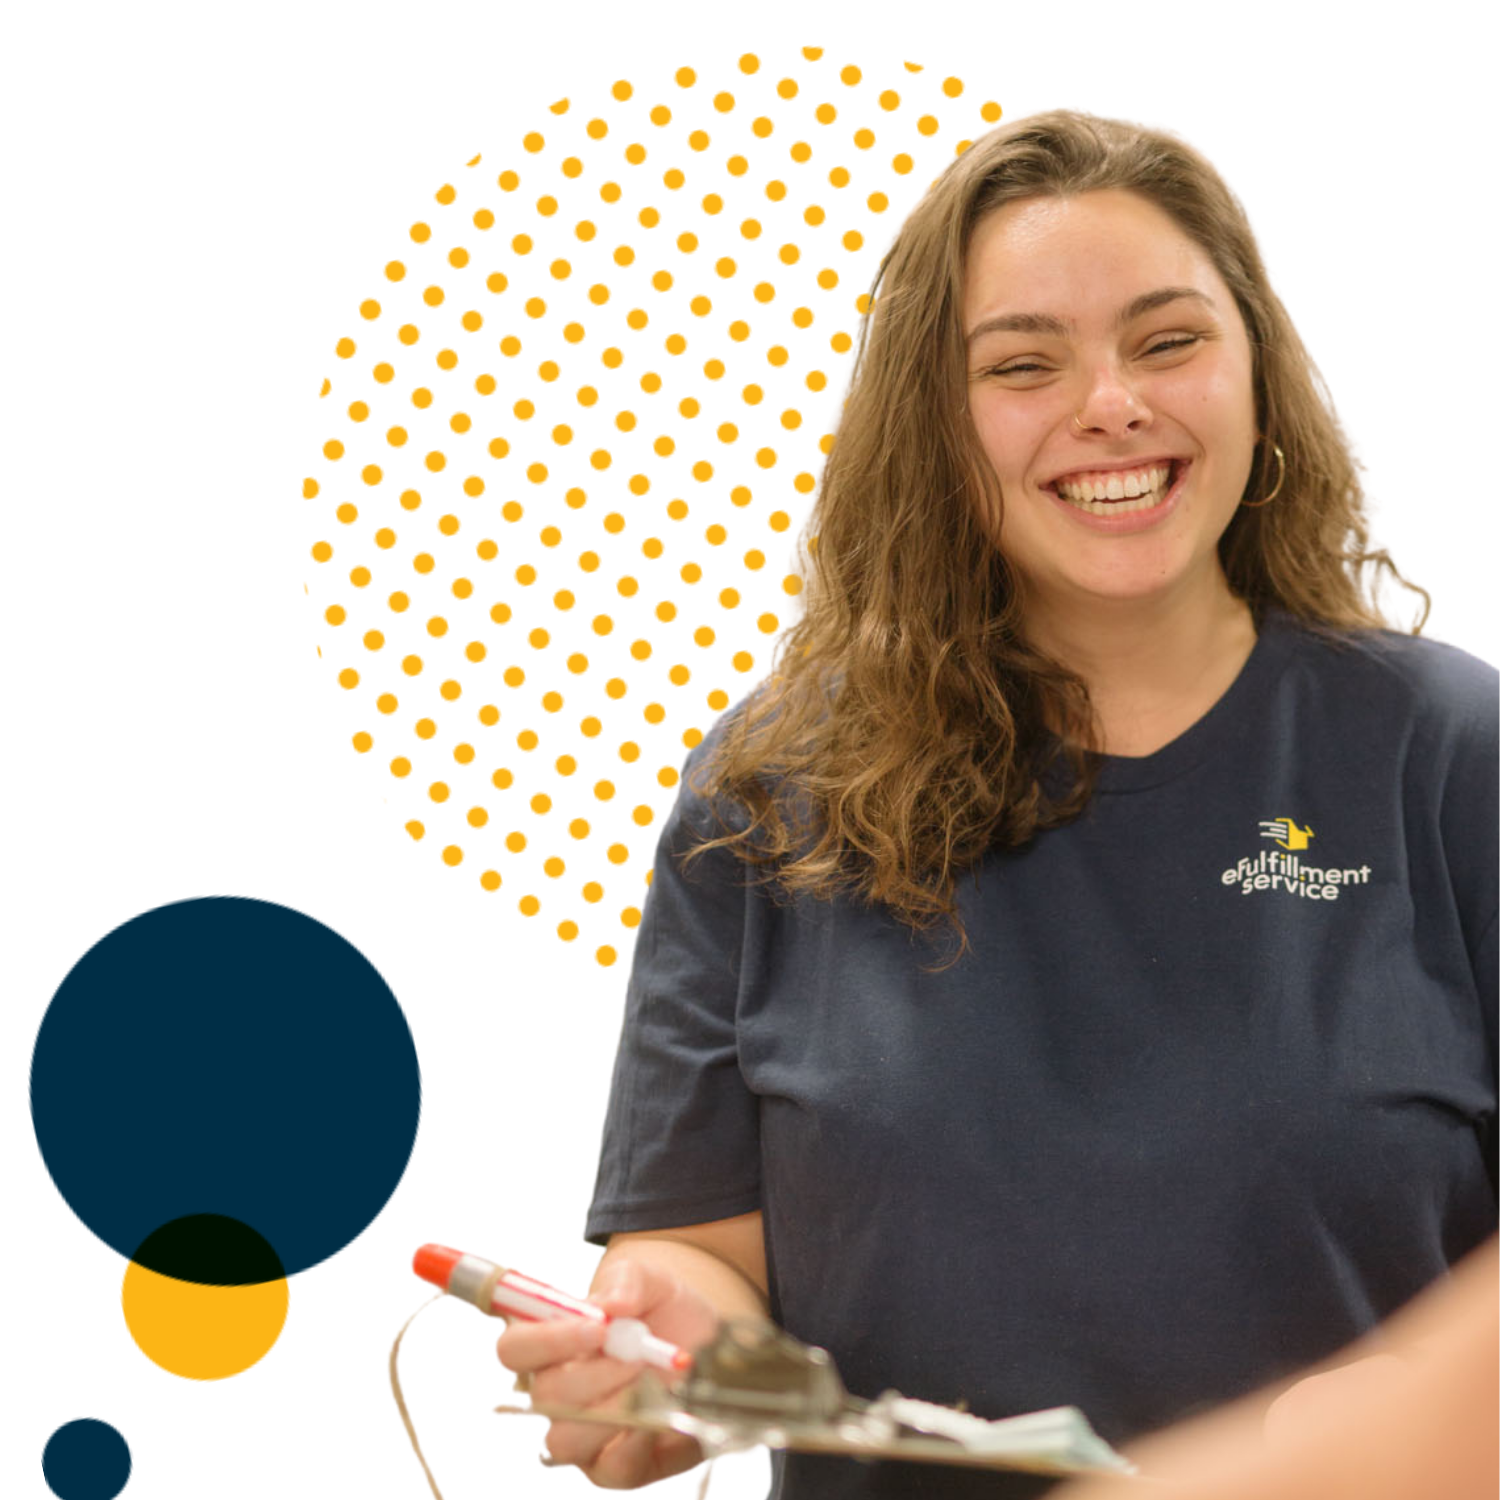 Efulfillment Service Employee Smiling With Clipboard and Large Dots